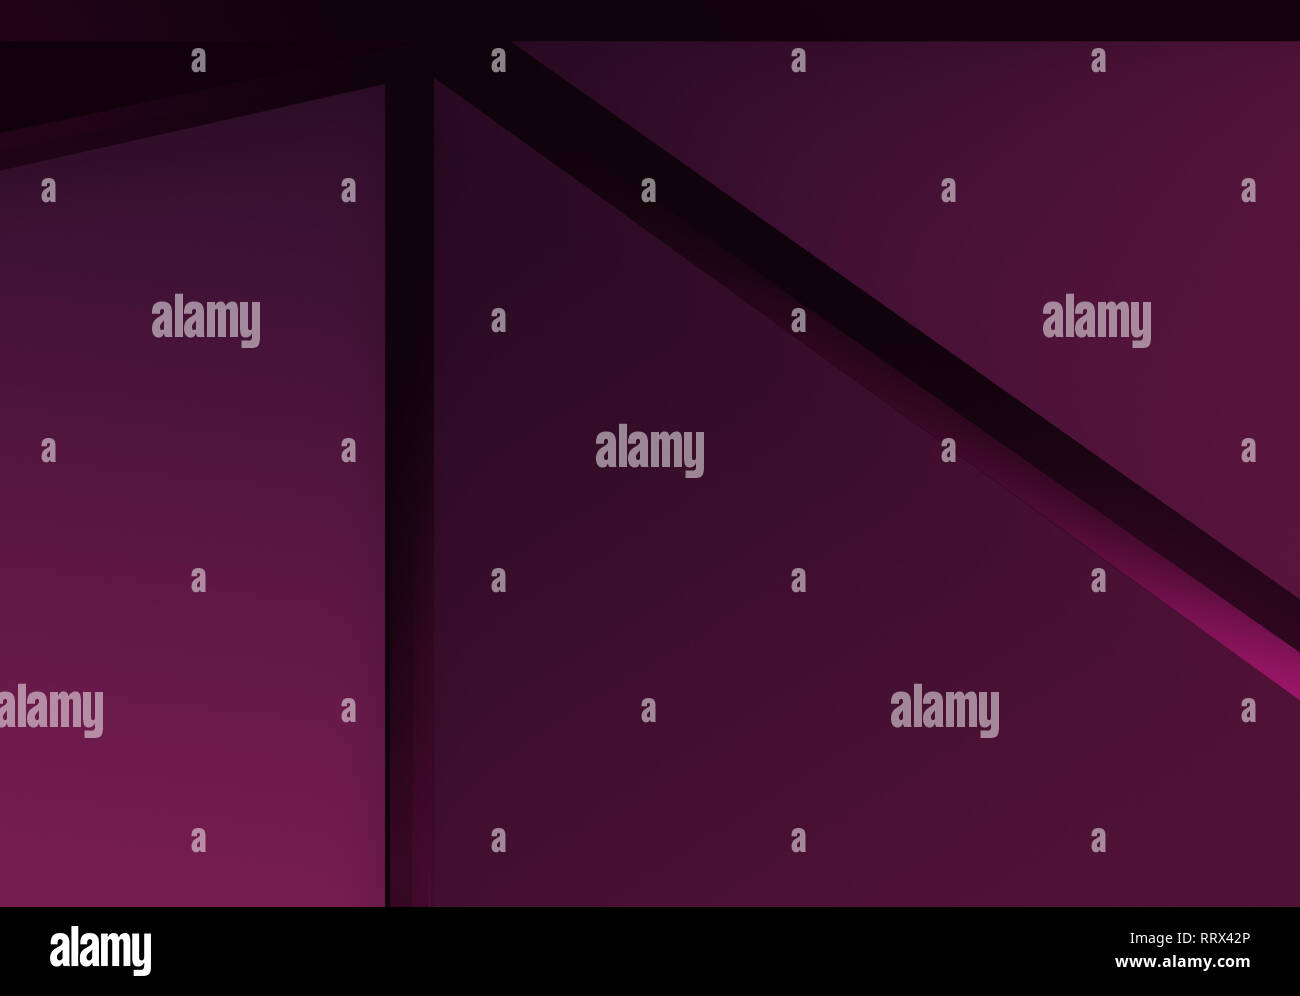 Abstract purple and pink polygonal vector background. Geometric vector illustration, creative design template. - Stock Image